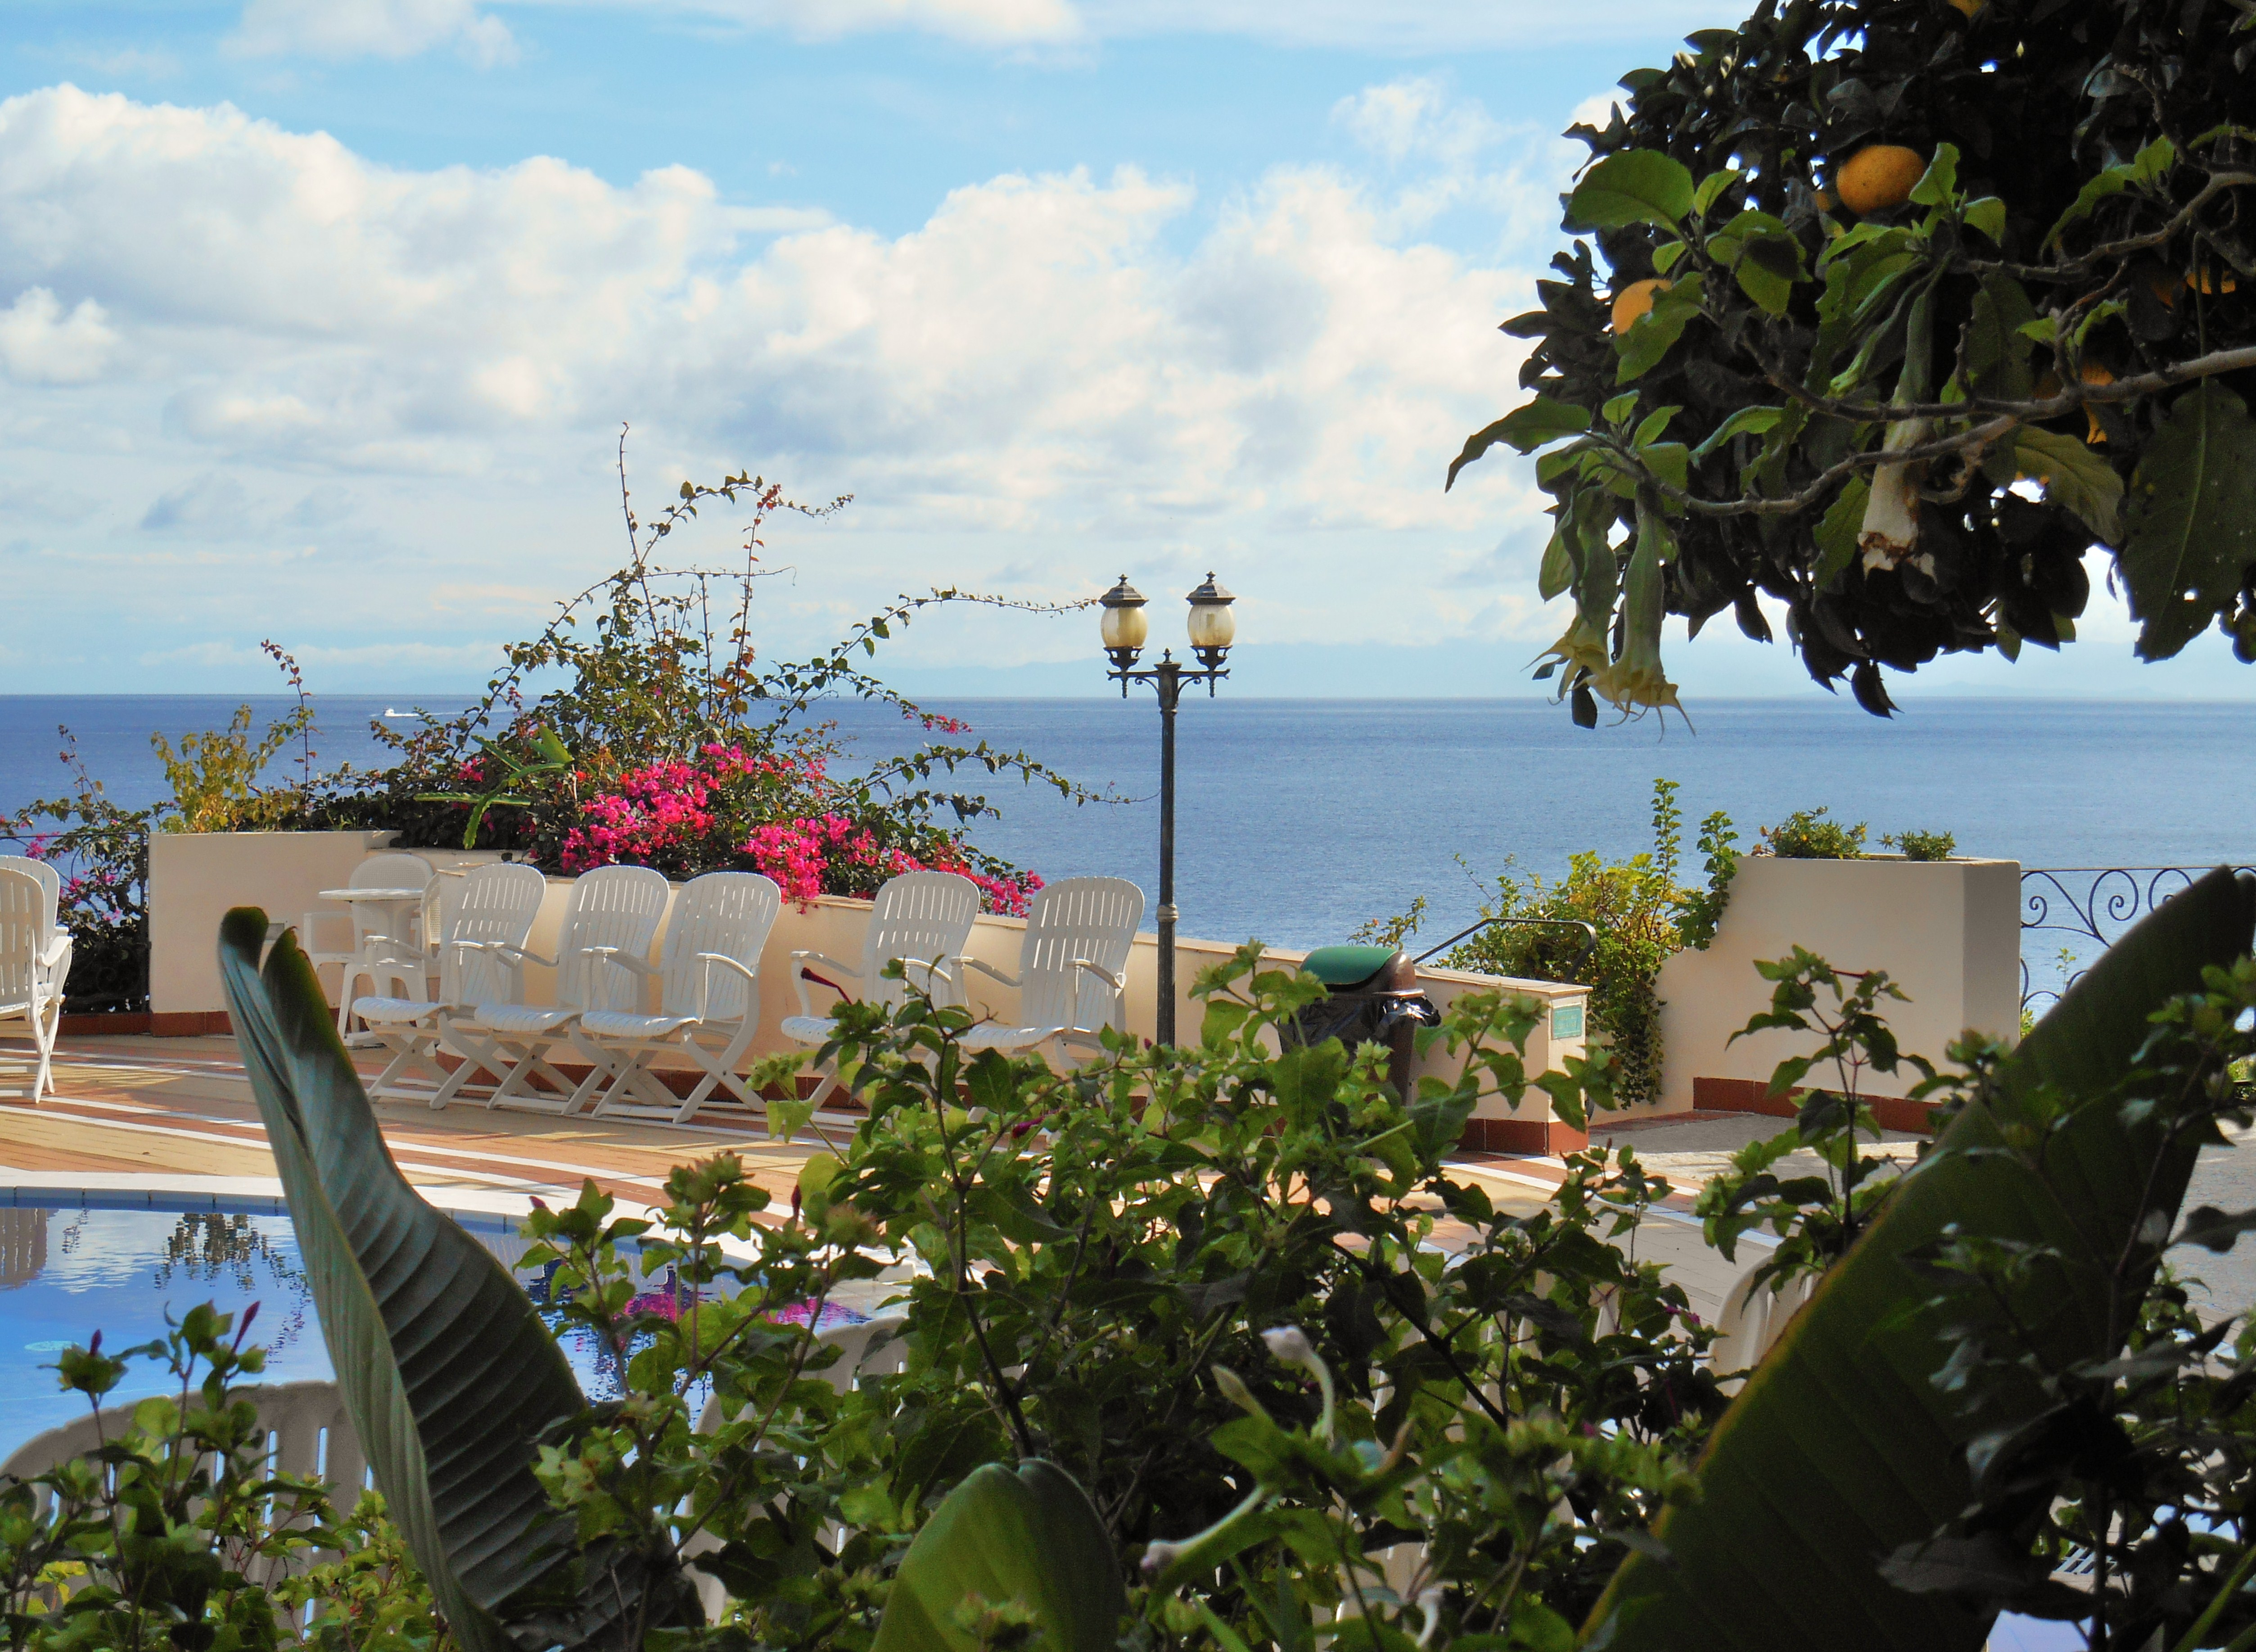 Lipari aeolian islands isole eolie travels with miha - Giardino sul mare lipari ...